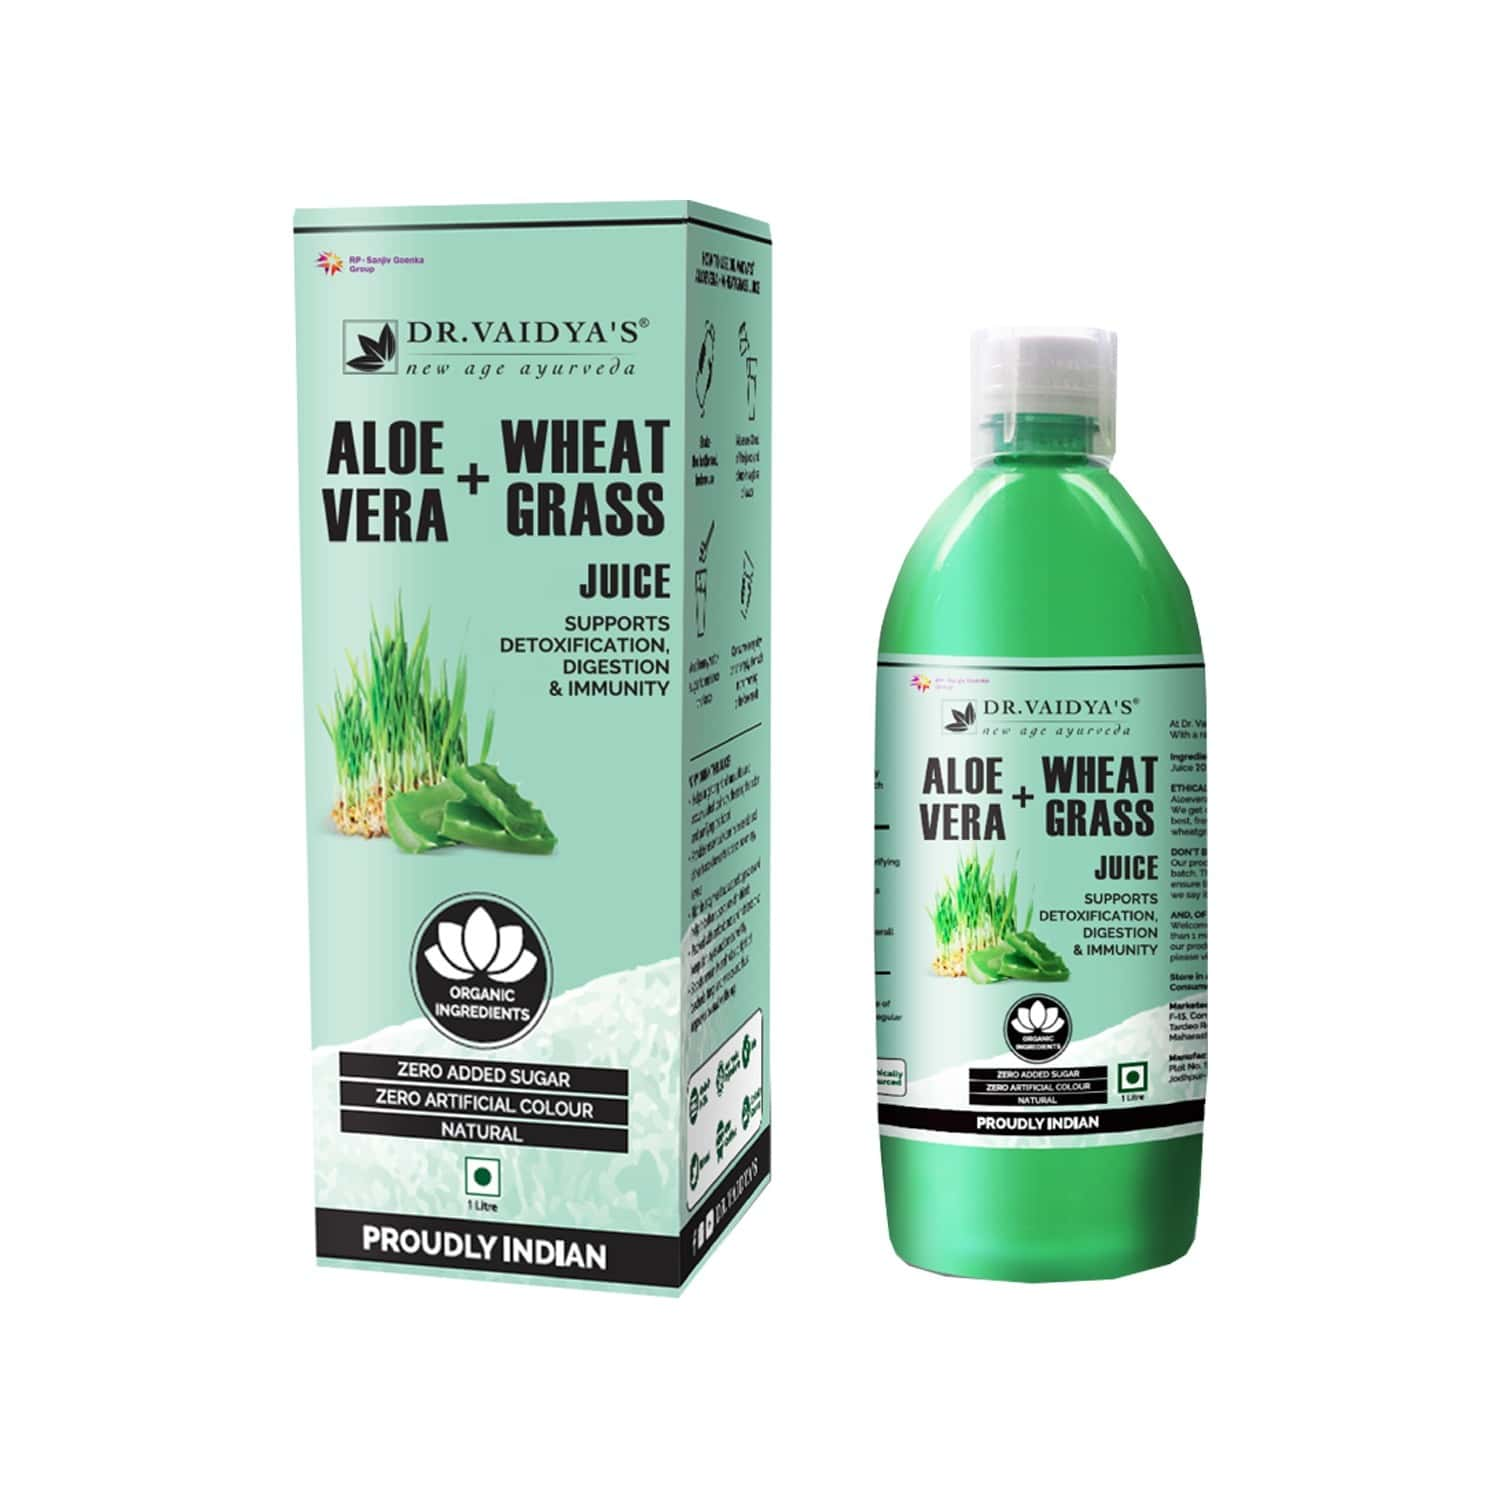 Dr. Vaidya's Aloevera And Wheatgrass Juice - 1 Litre